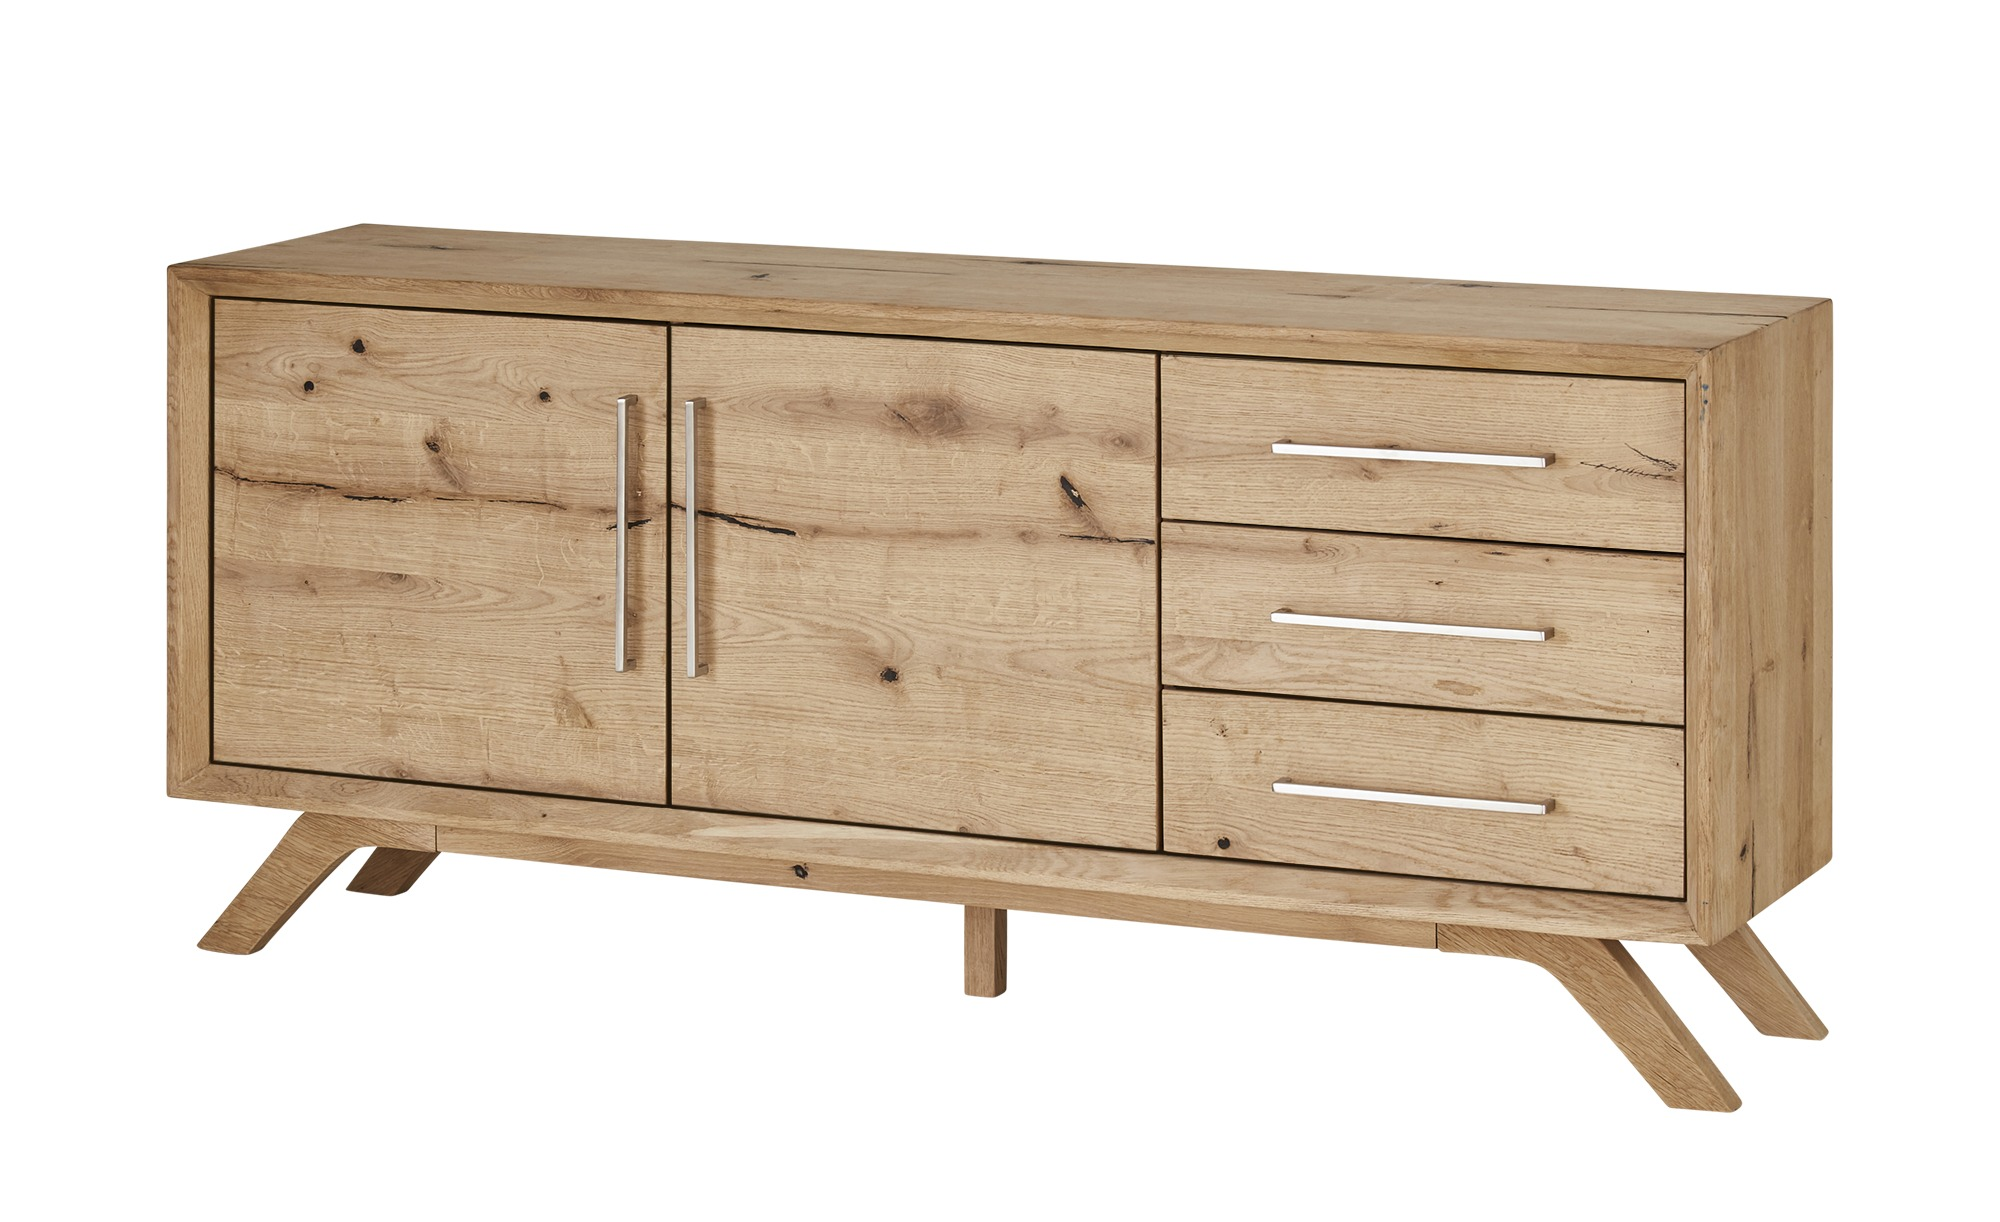 Gray & Jones Sideboard  Cap Ferrat ¦ holzfarben ¦ Maße (cm): B: 180 H: 78 T: 43 Kommoden & Sideboards > Sideboards - Höffner